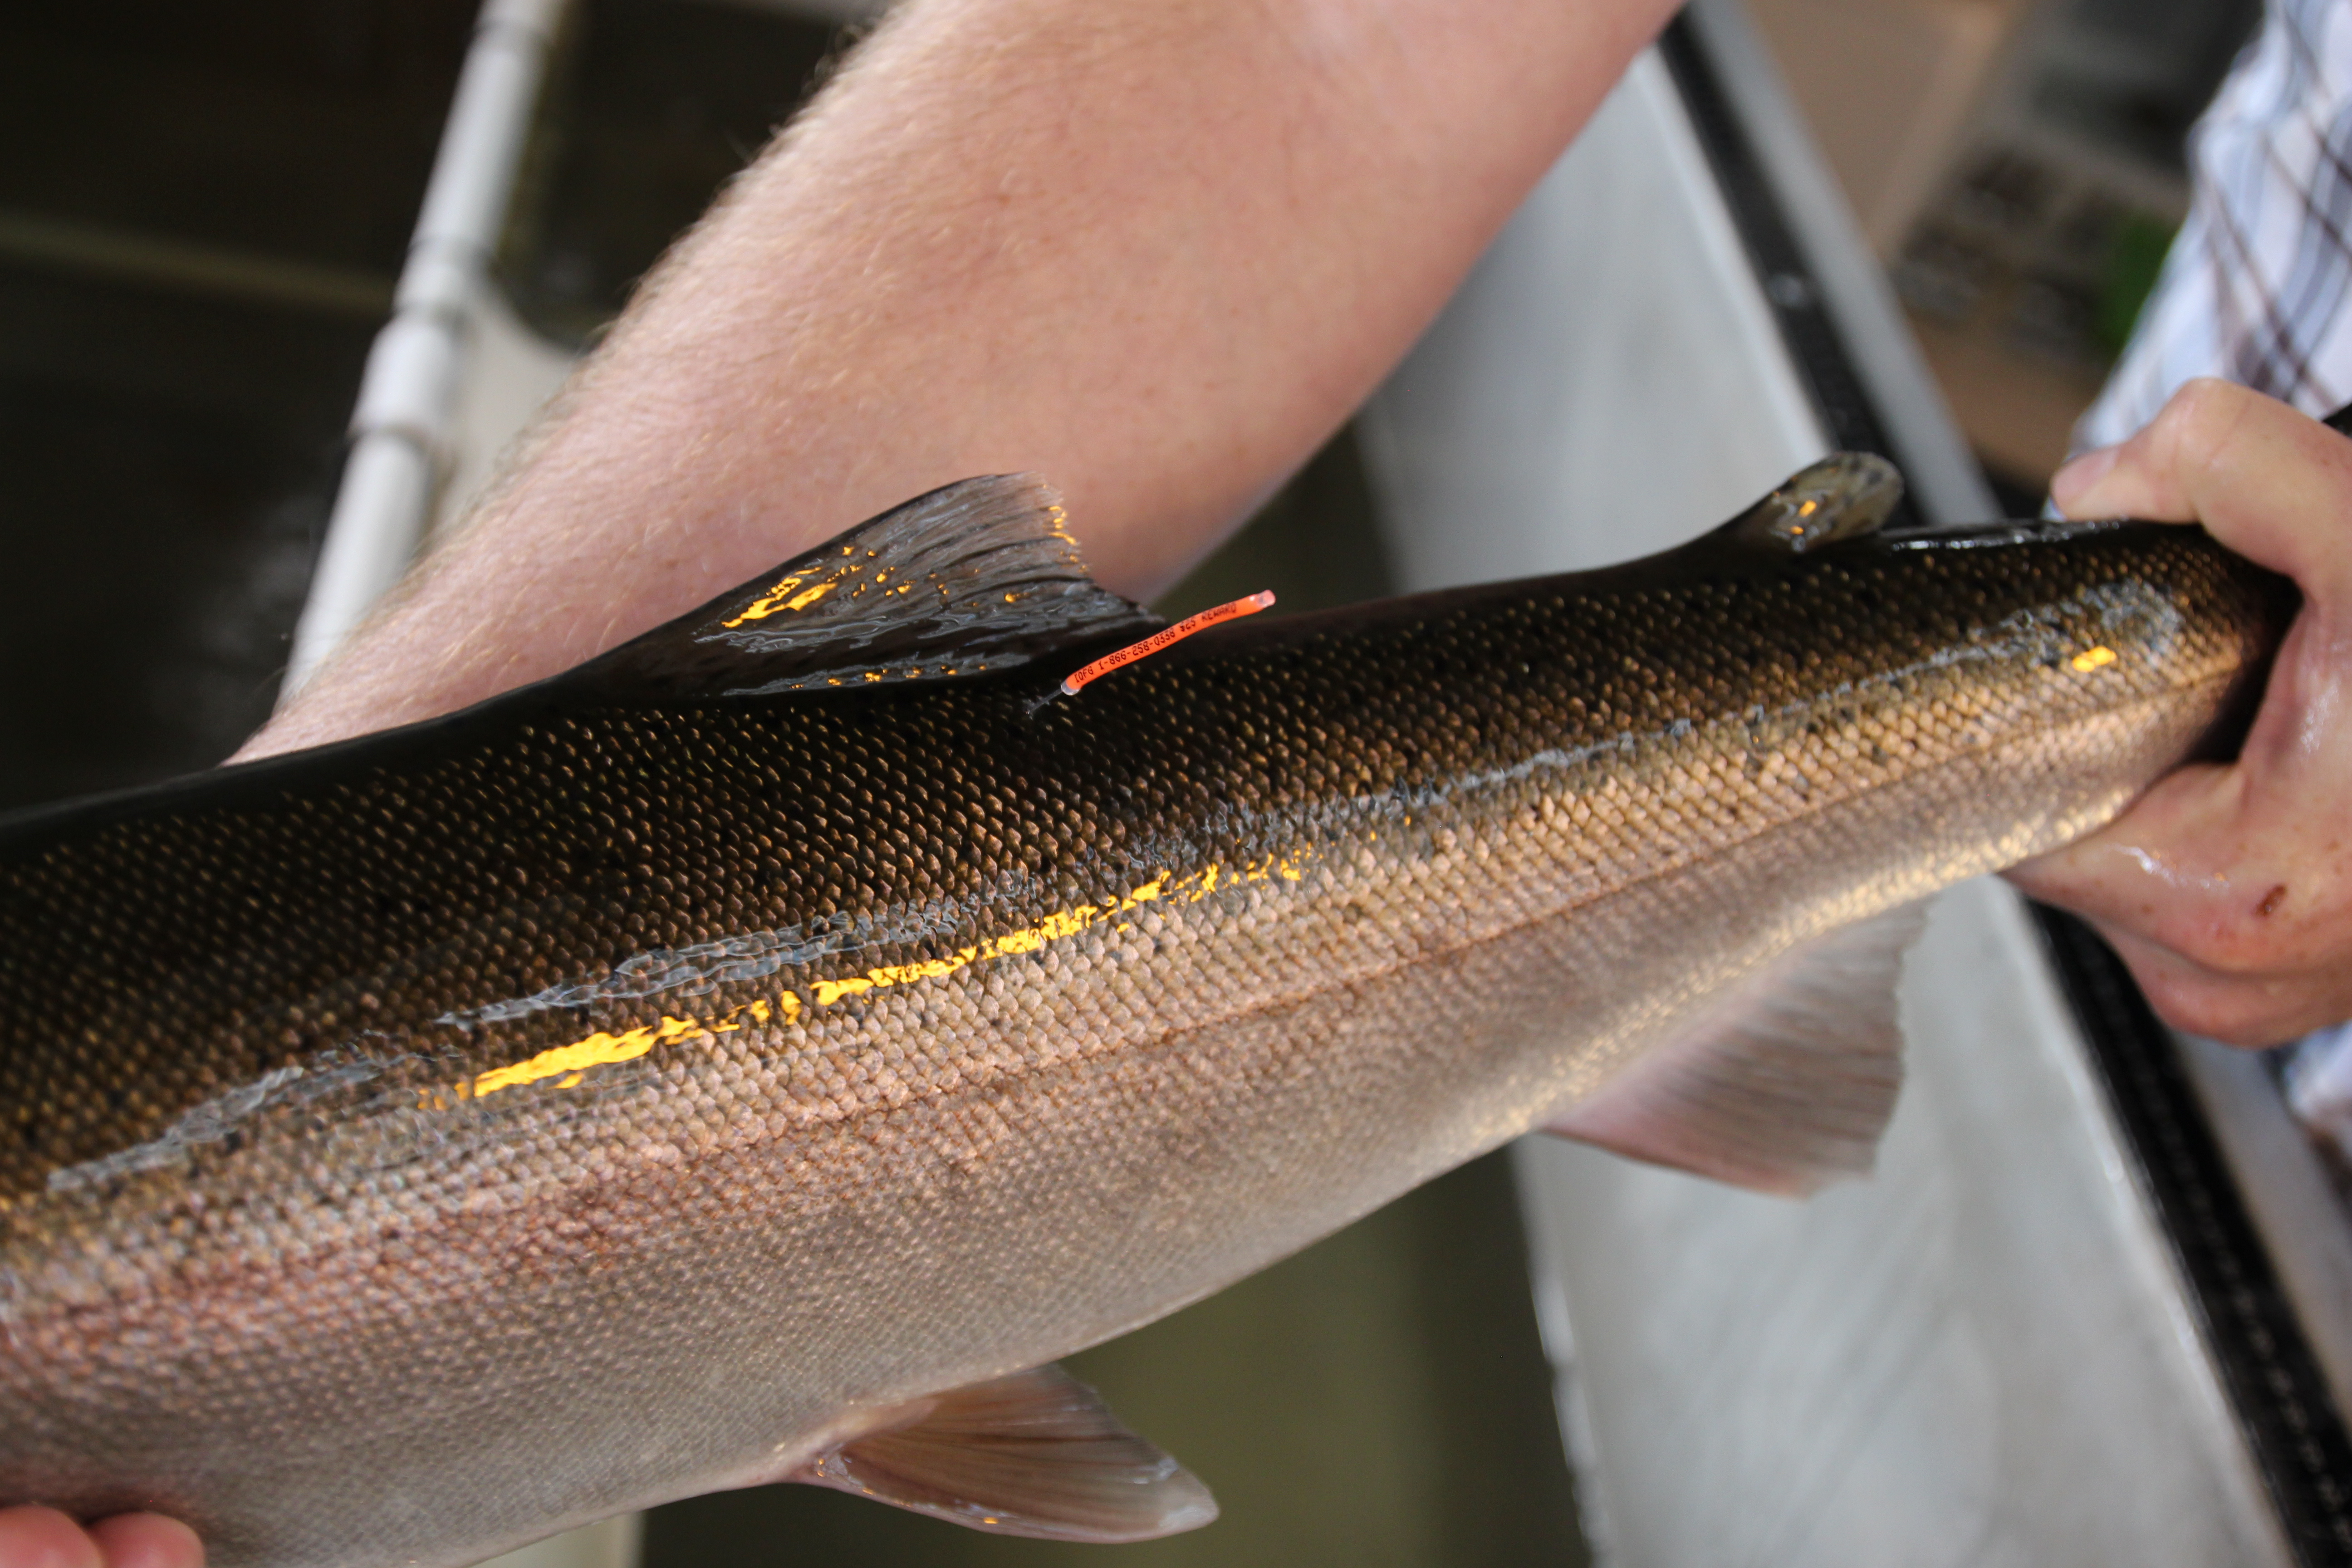 Picture of t-bar tagged adult steelhead from Lower Granite Dam.